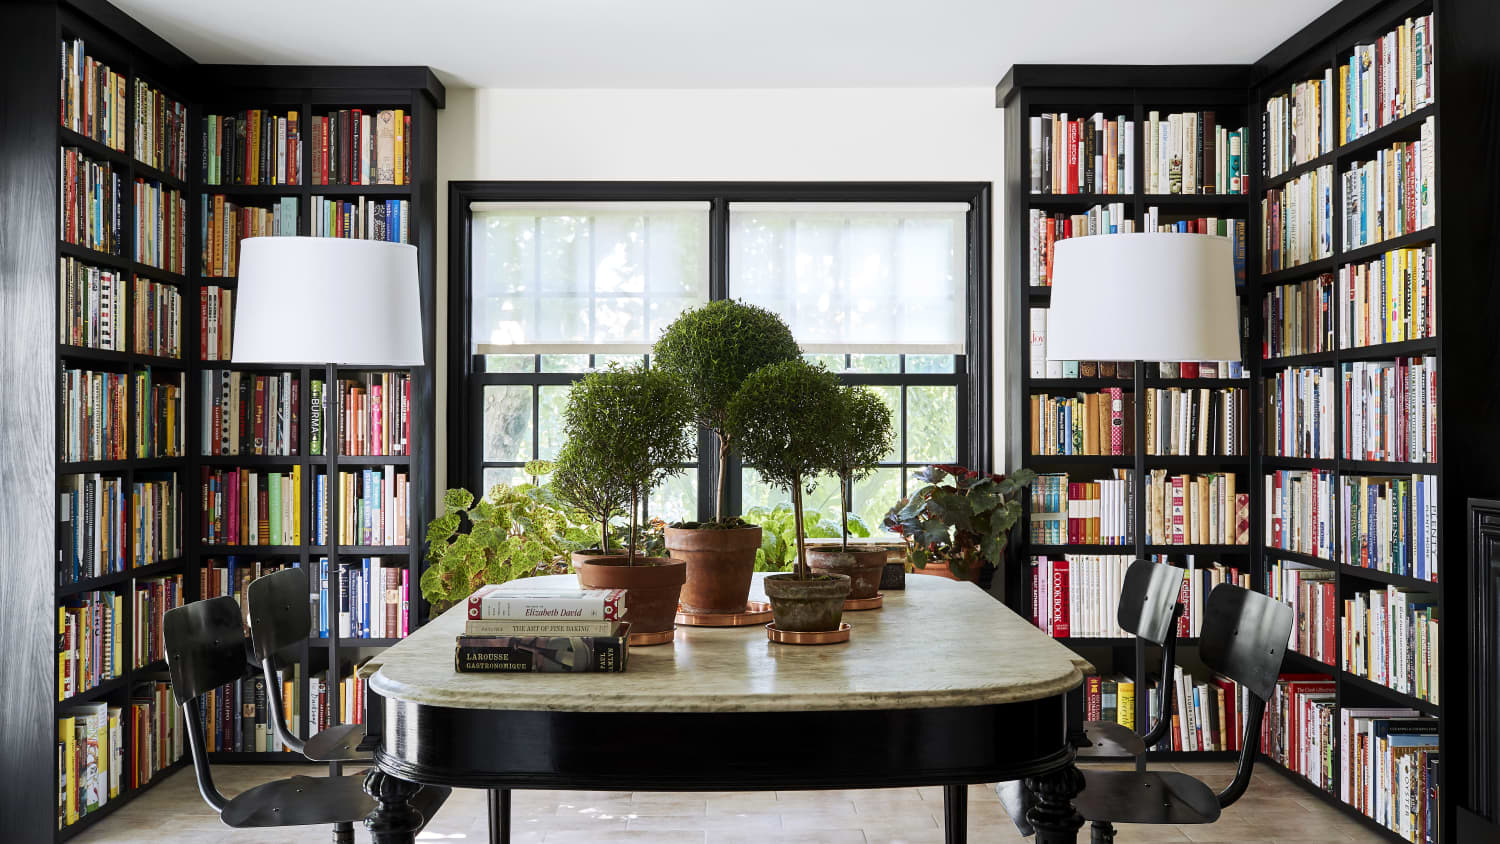 Martha Stewart Home Cookbook Library | Apartment Therapy